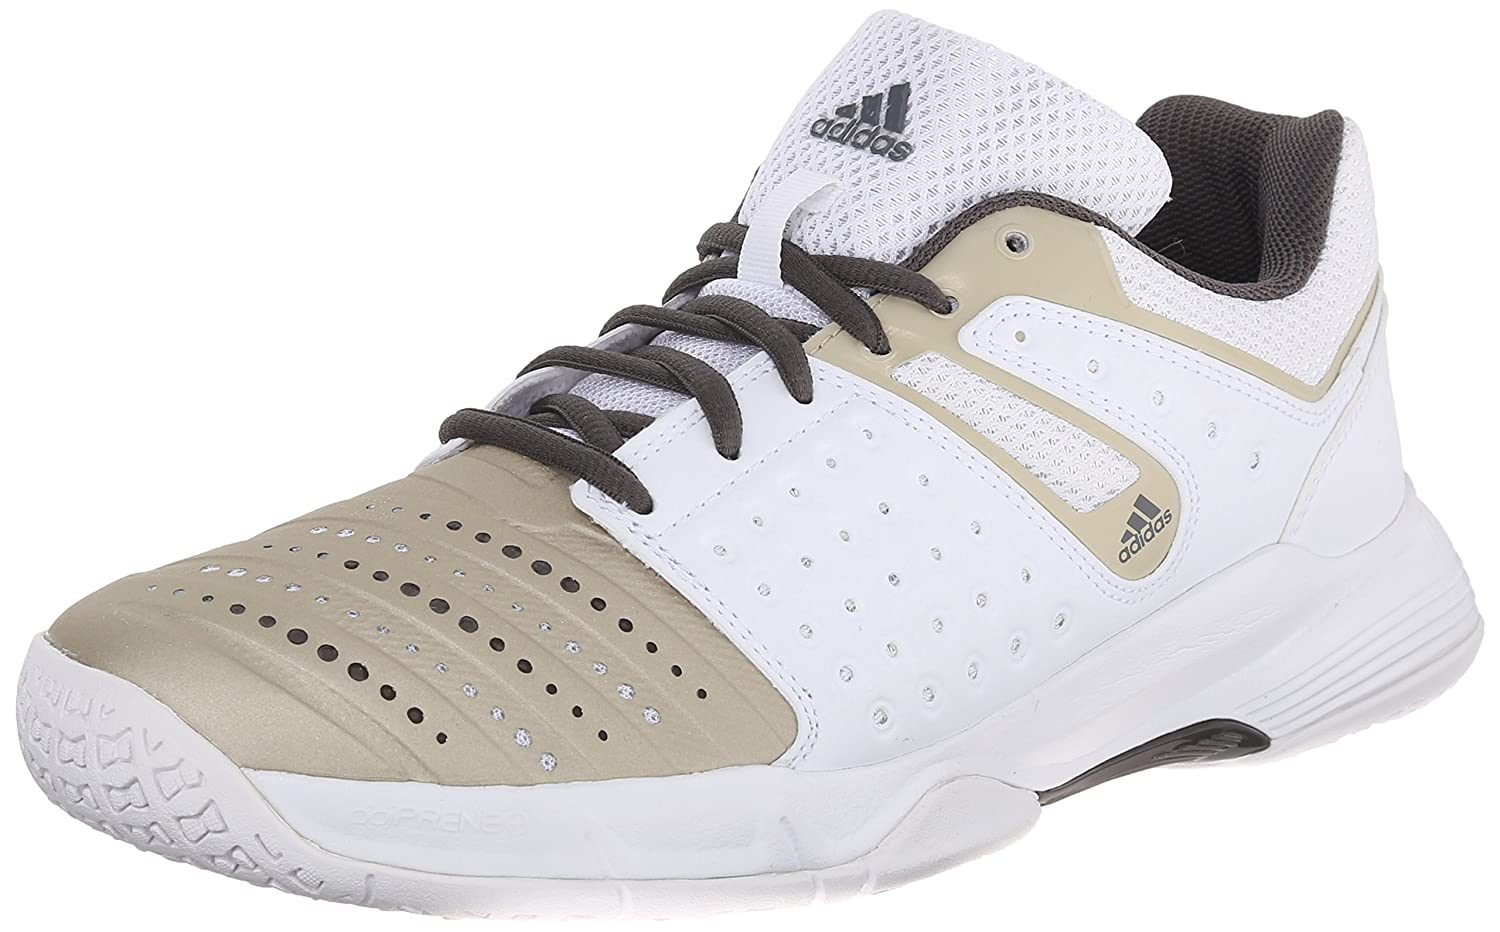 d6d1940043e5f9 ... inexpensive adidas performance women s court stabil 12 w volleyball shoe  white star metallic grey 8.5